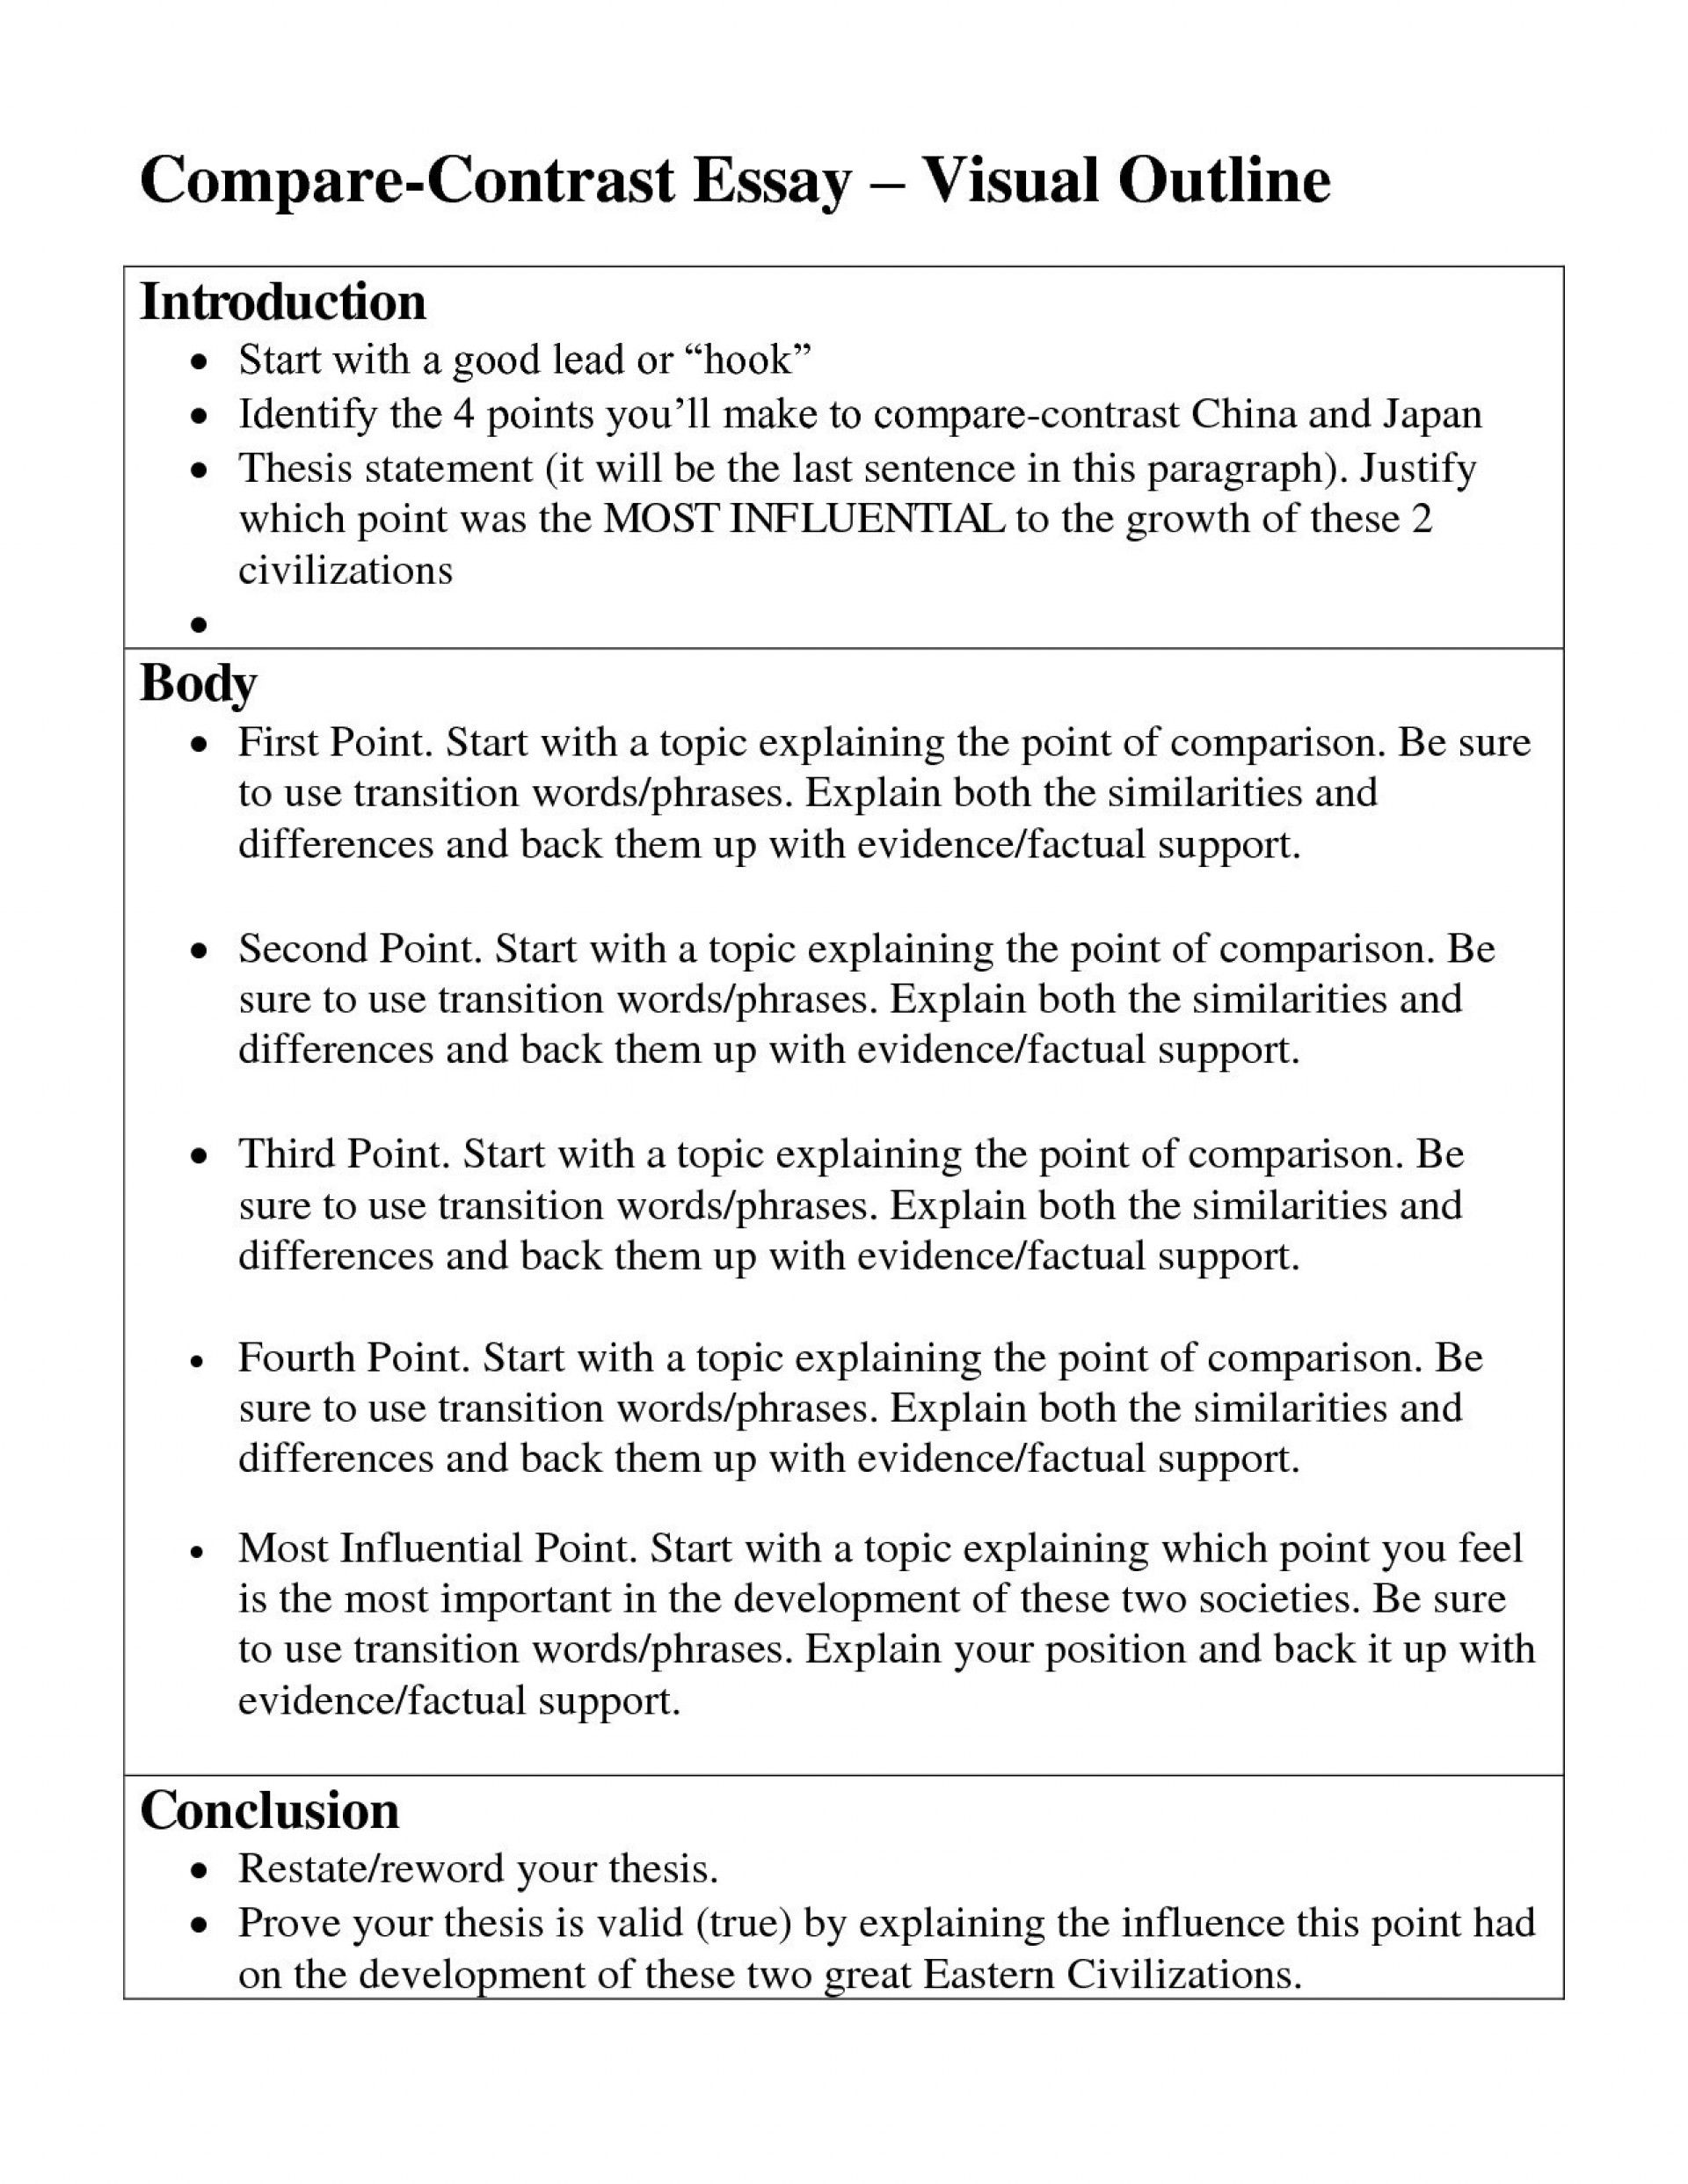 019 Essay Example Writing Good Hooks Worksheet Refrence Laws Fresh How To Write Hook For An Ess Argumentative Narrative The Best College Sentence Informative About Yourself Expository Outstanding Make A Catchy Great 1920